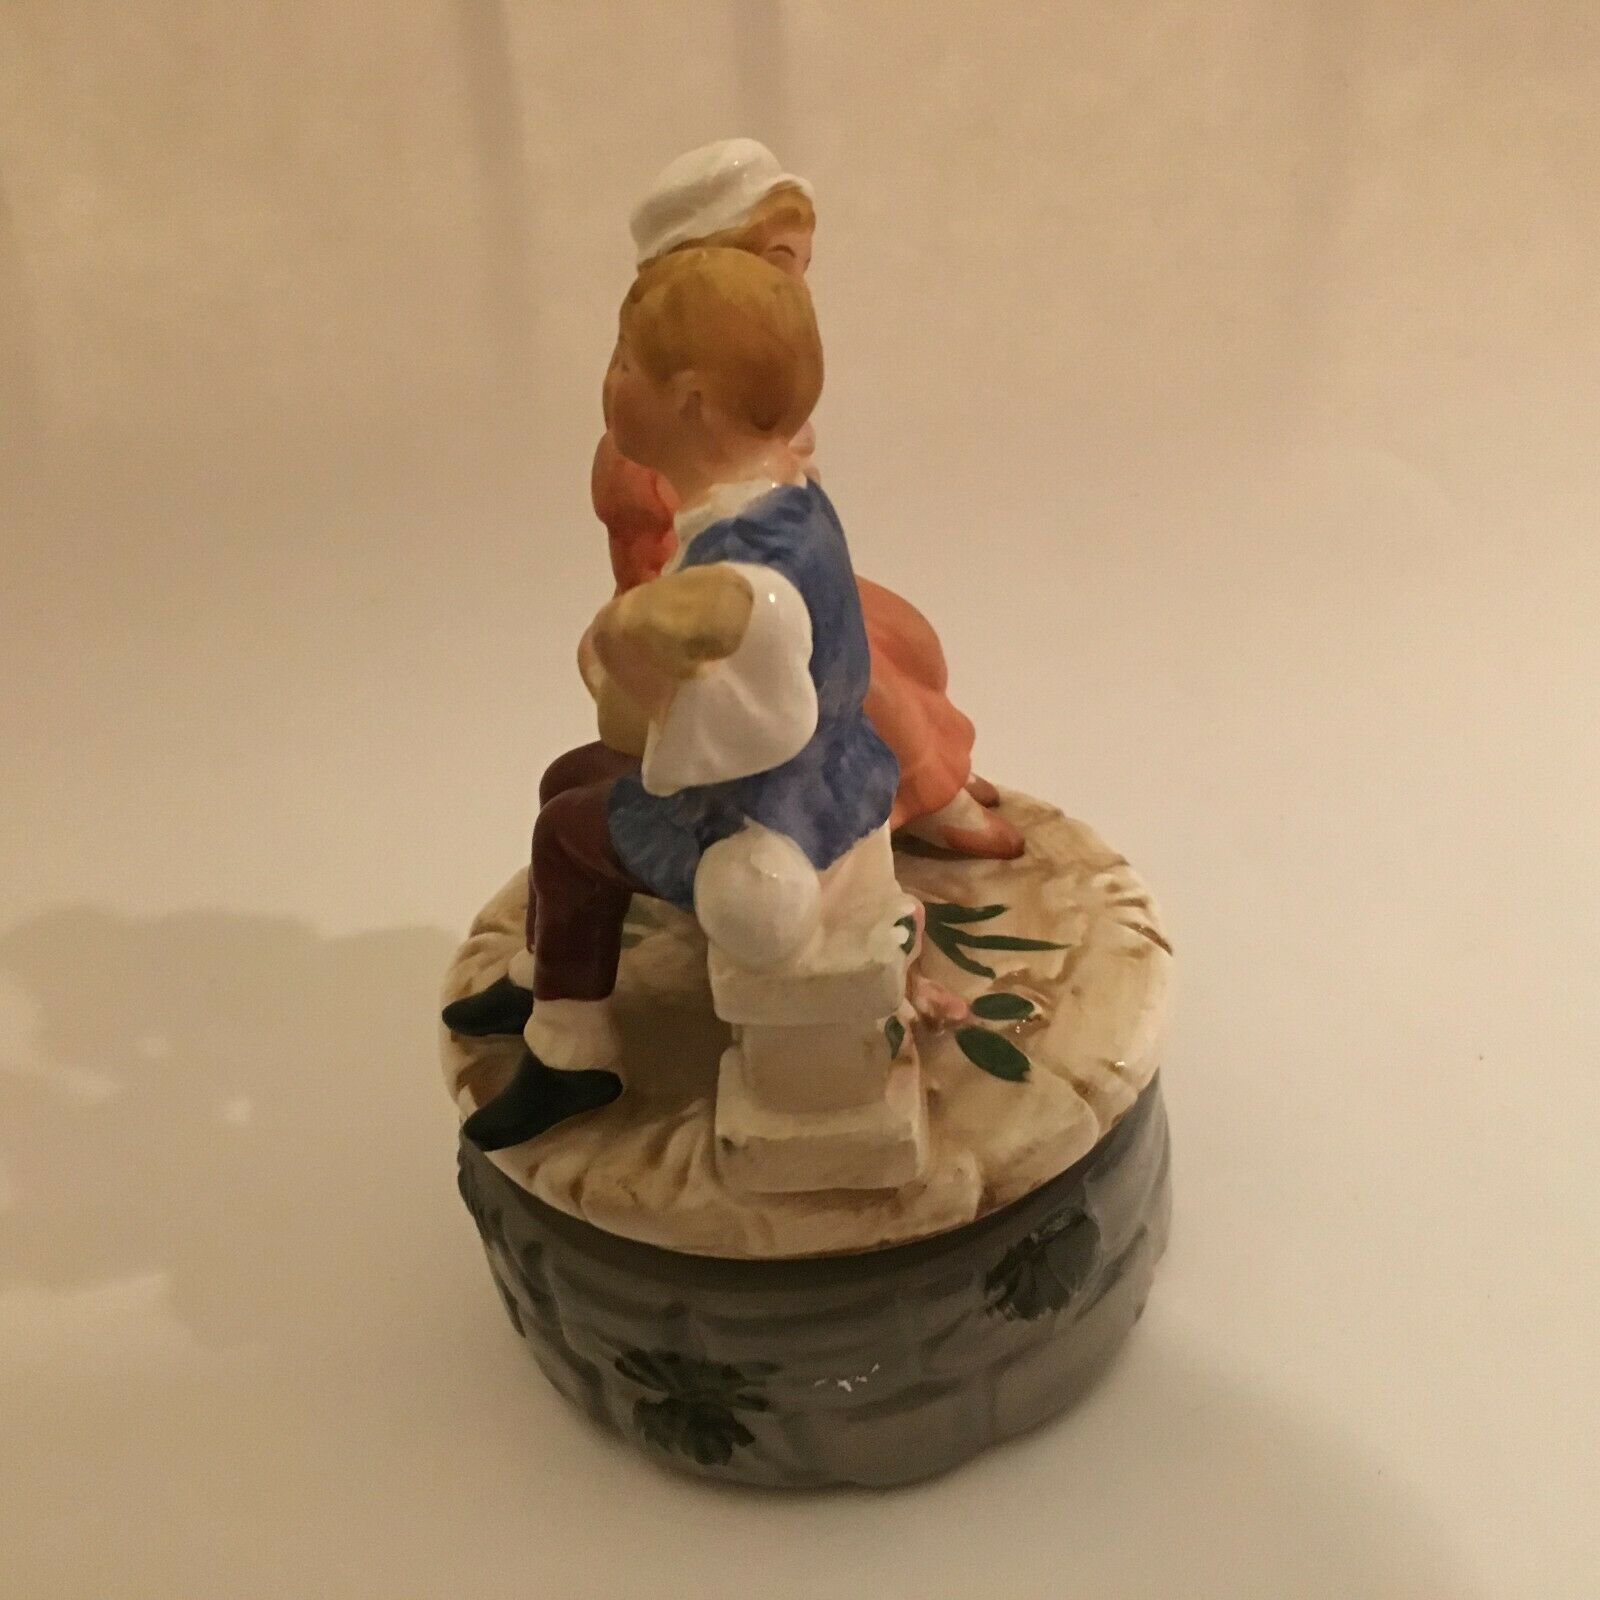 VINTAGE BOY & GIRL Handcrafted Rotating MUSIC BOX Works Great TUNDRA JAPAN 6X4x4